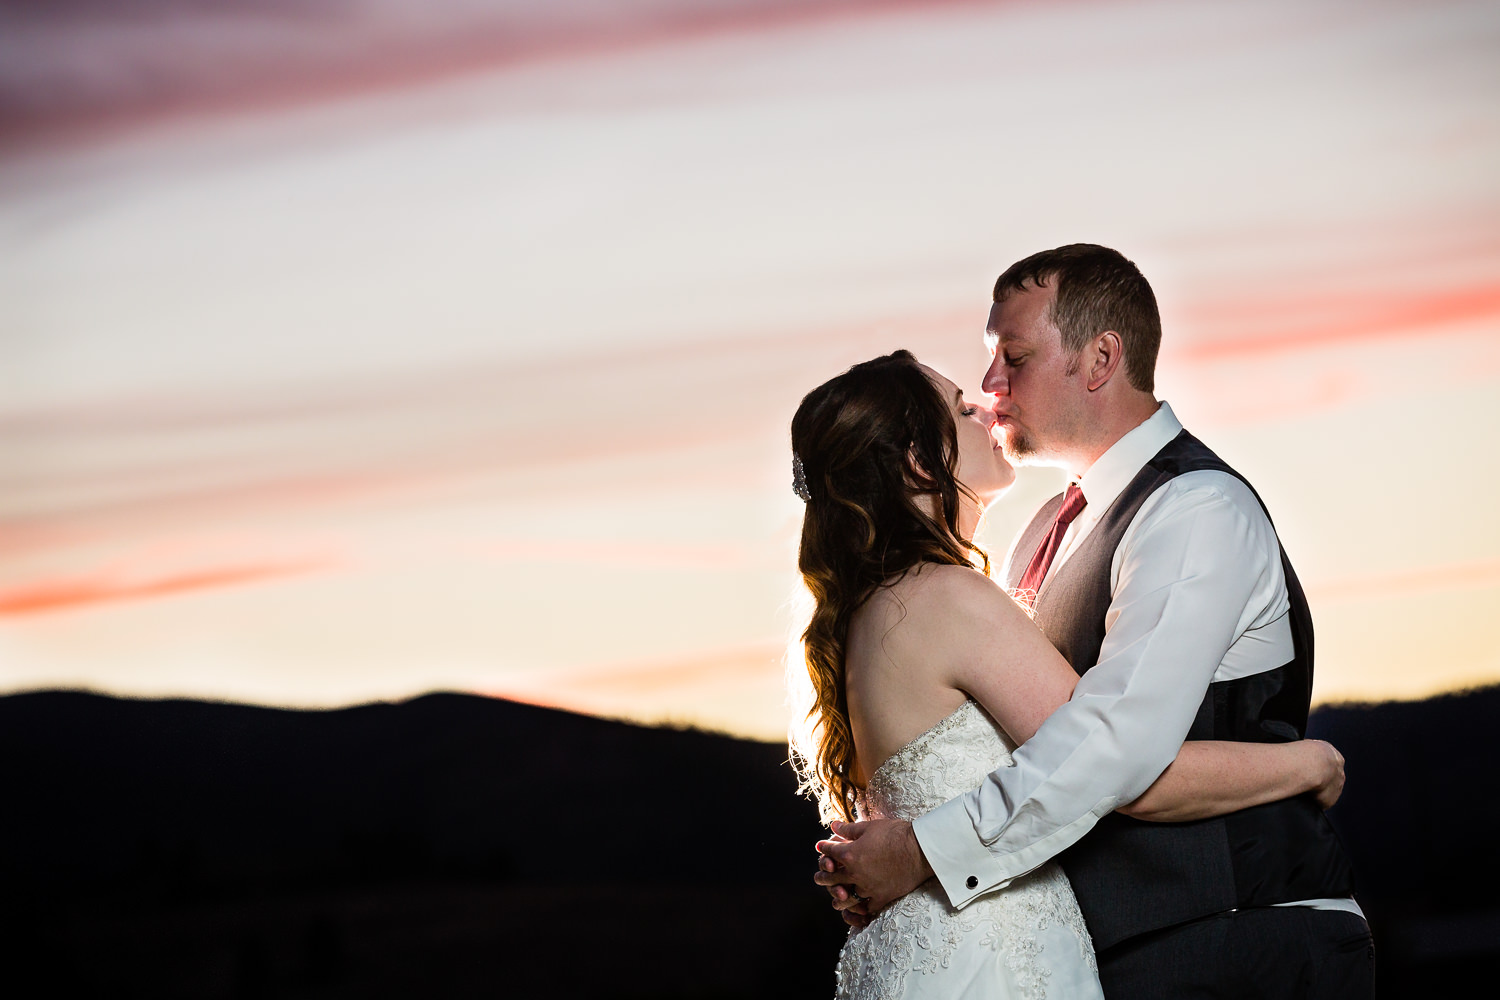 heritage-hall-missoula-montana-bride-groom-sunset-kiss.jpg